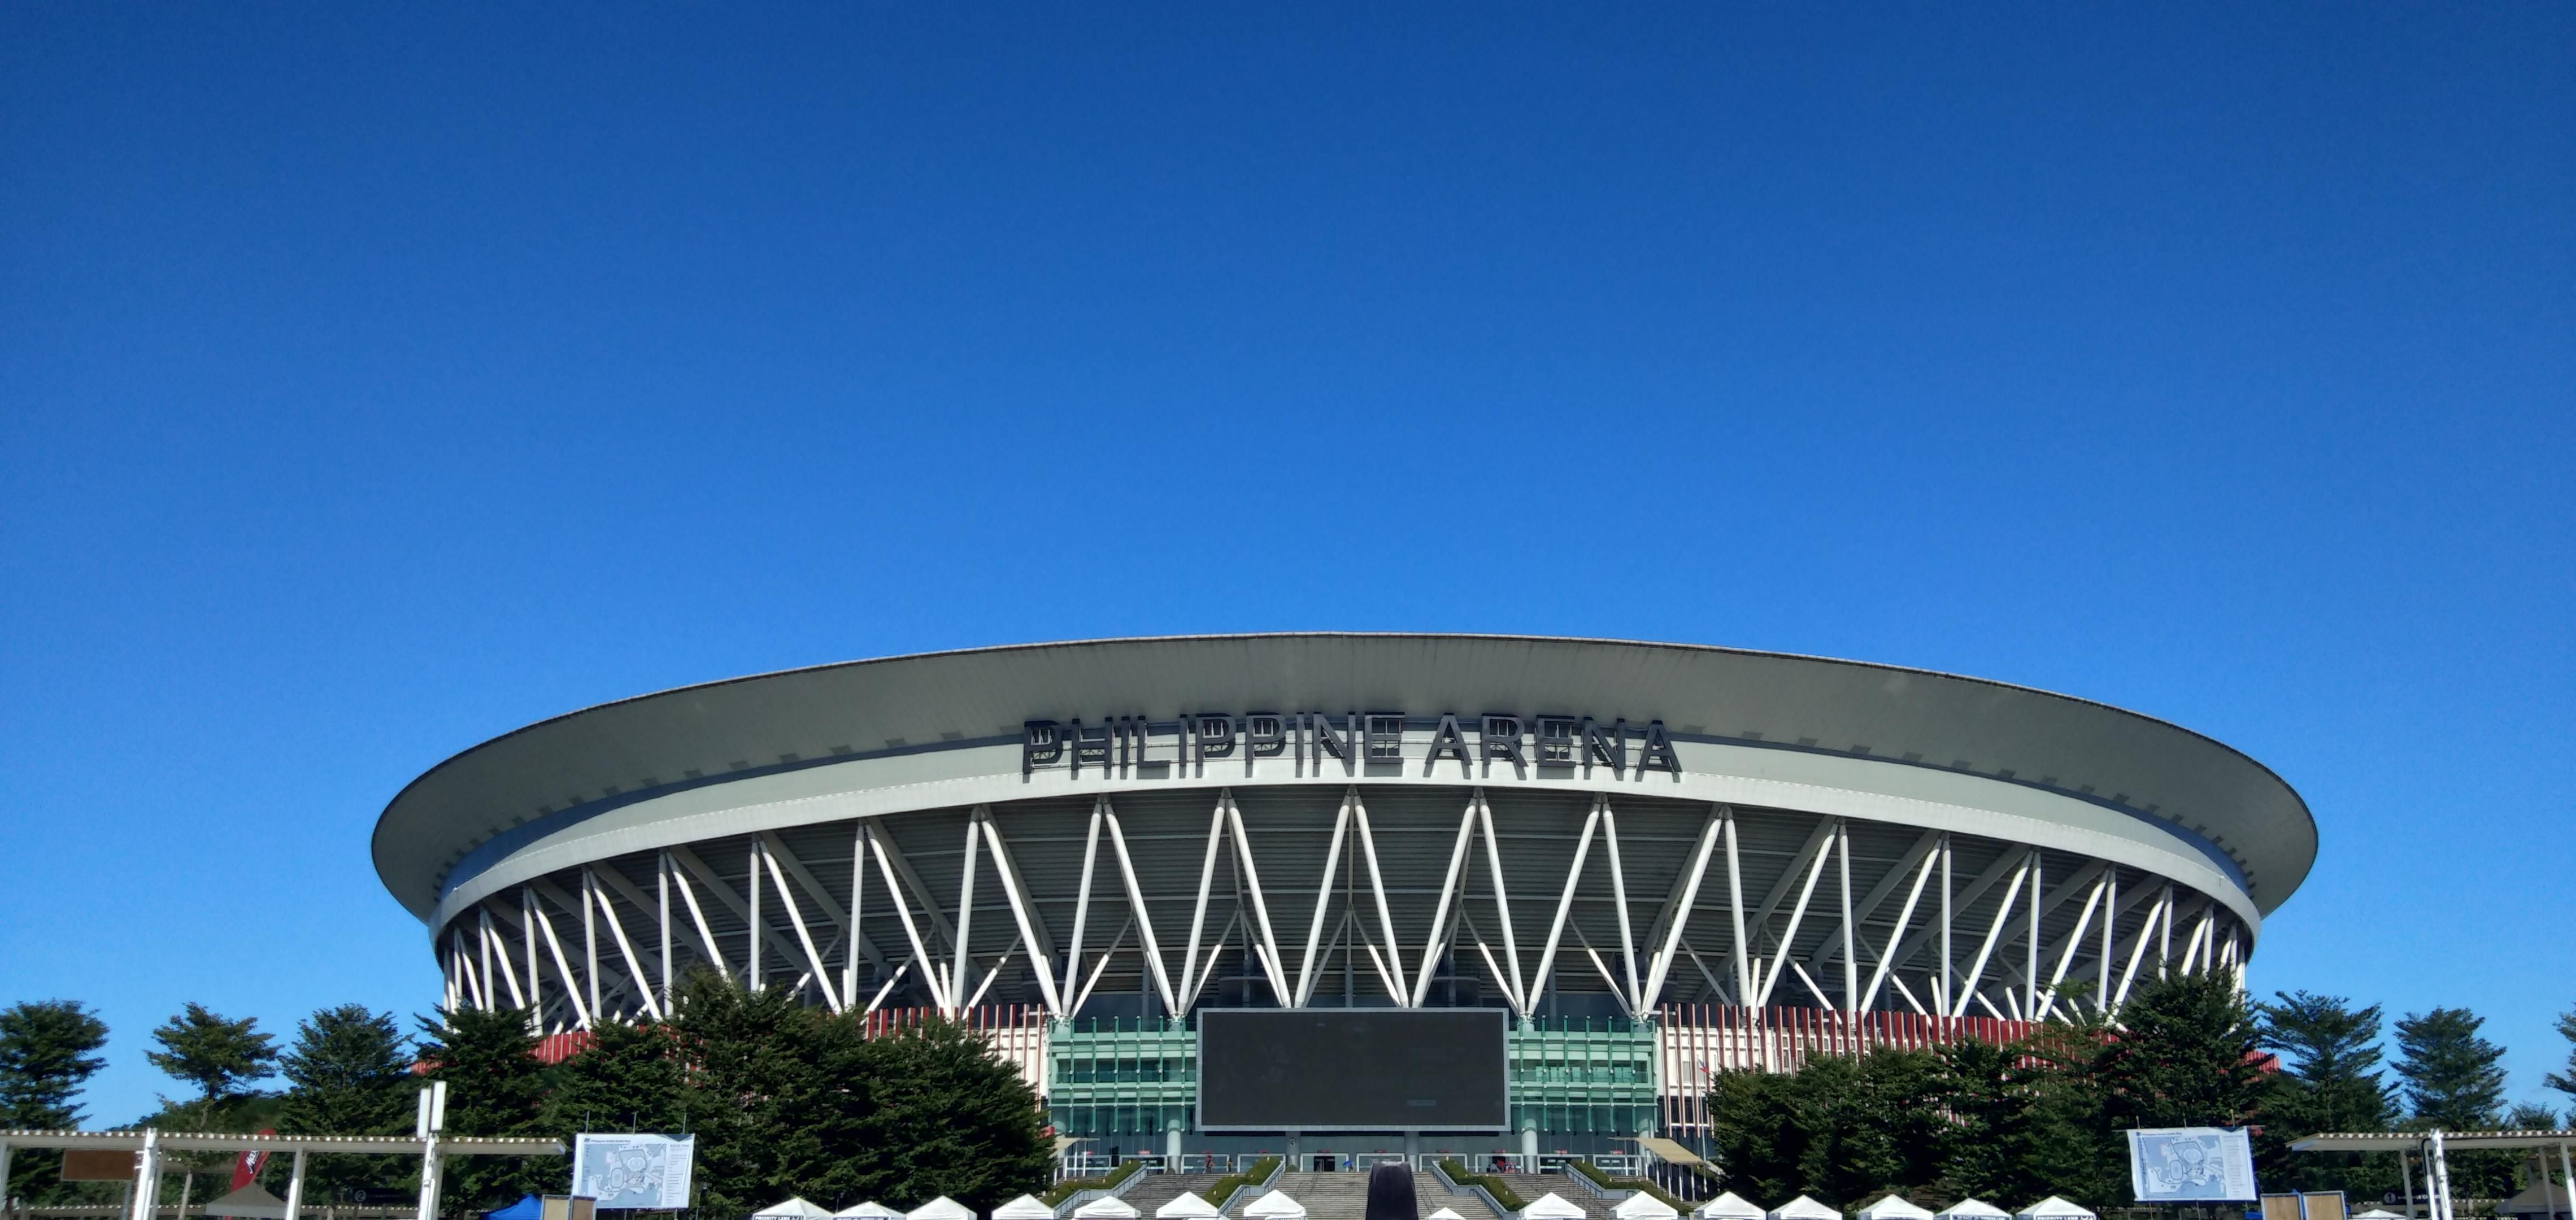 Building World S Largest Indoor Arena With A Maximum Seating Capacity Of 55000 Architecture Building Indoor Arena